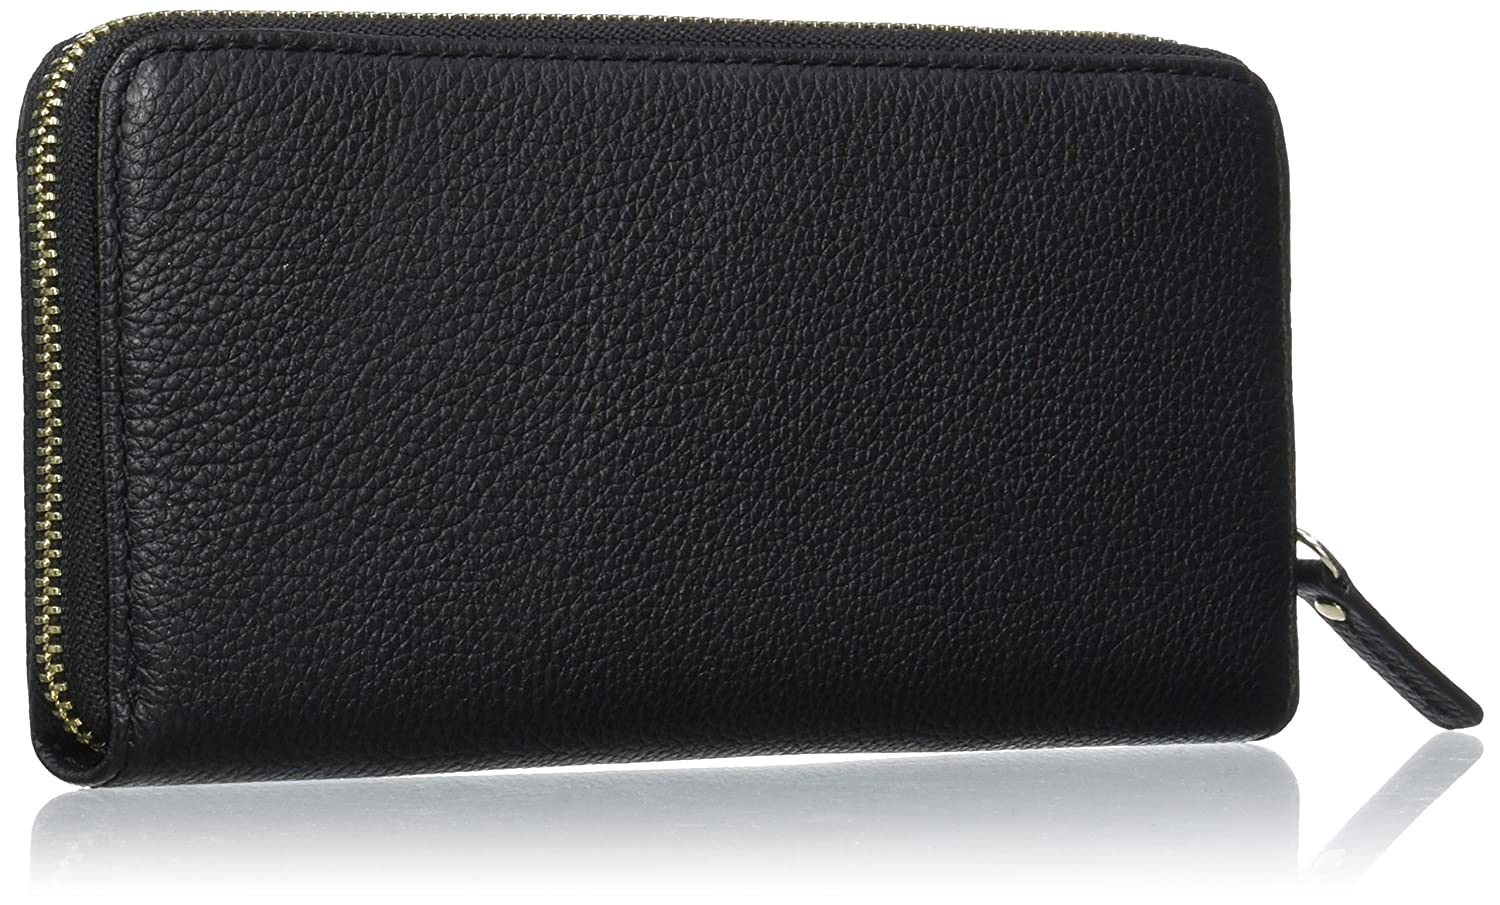 Tommy Hilfiger Basic Leather Large Za Wallet, Cartera para Mujer, Negro (Black), 2.5x10x19.5 cm (W x H x L): Amazon.es: Zapatos y complementos